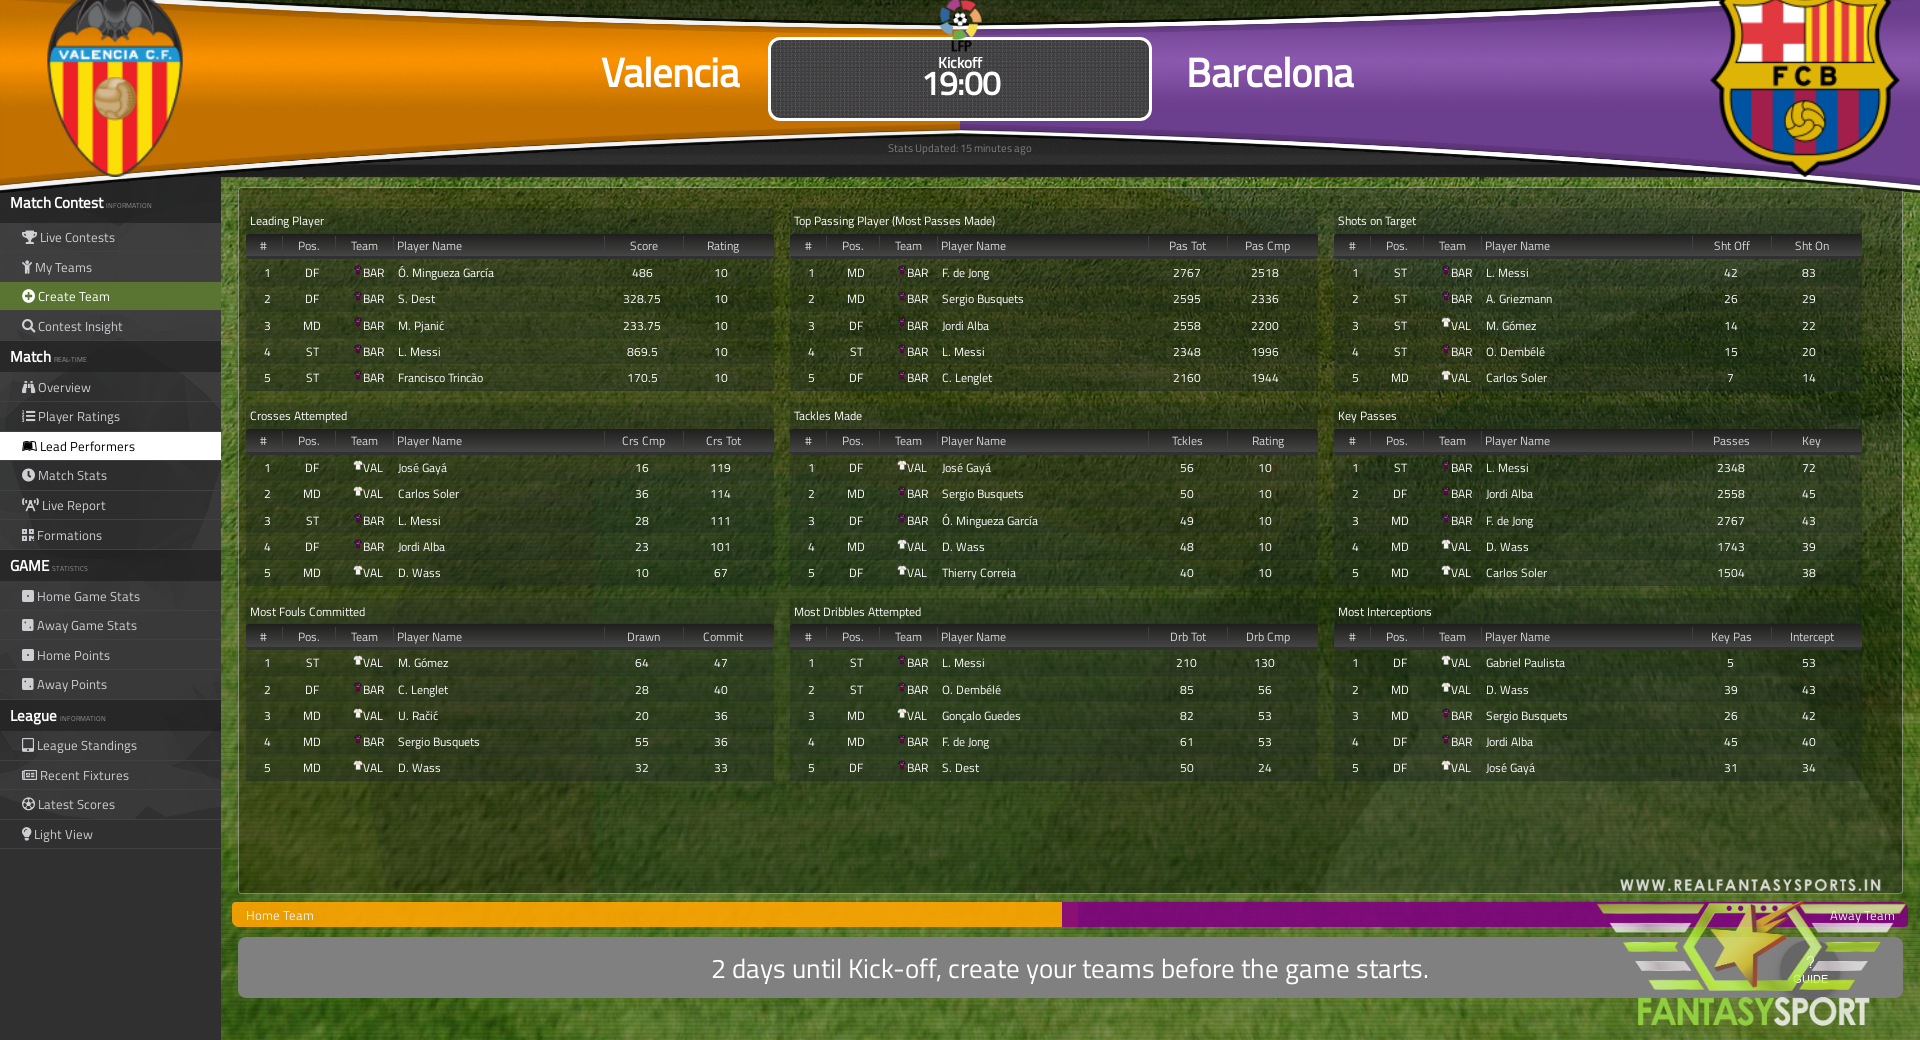 Fantasy Football Valencia Vs Barcelona Sunday 2nd May 2021